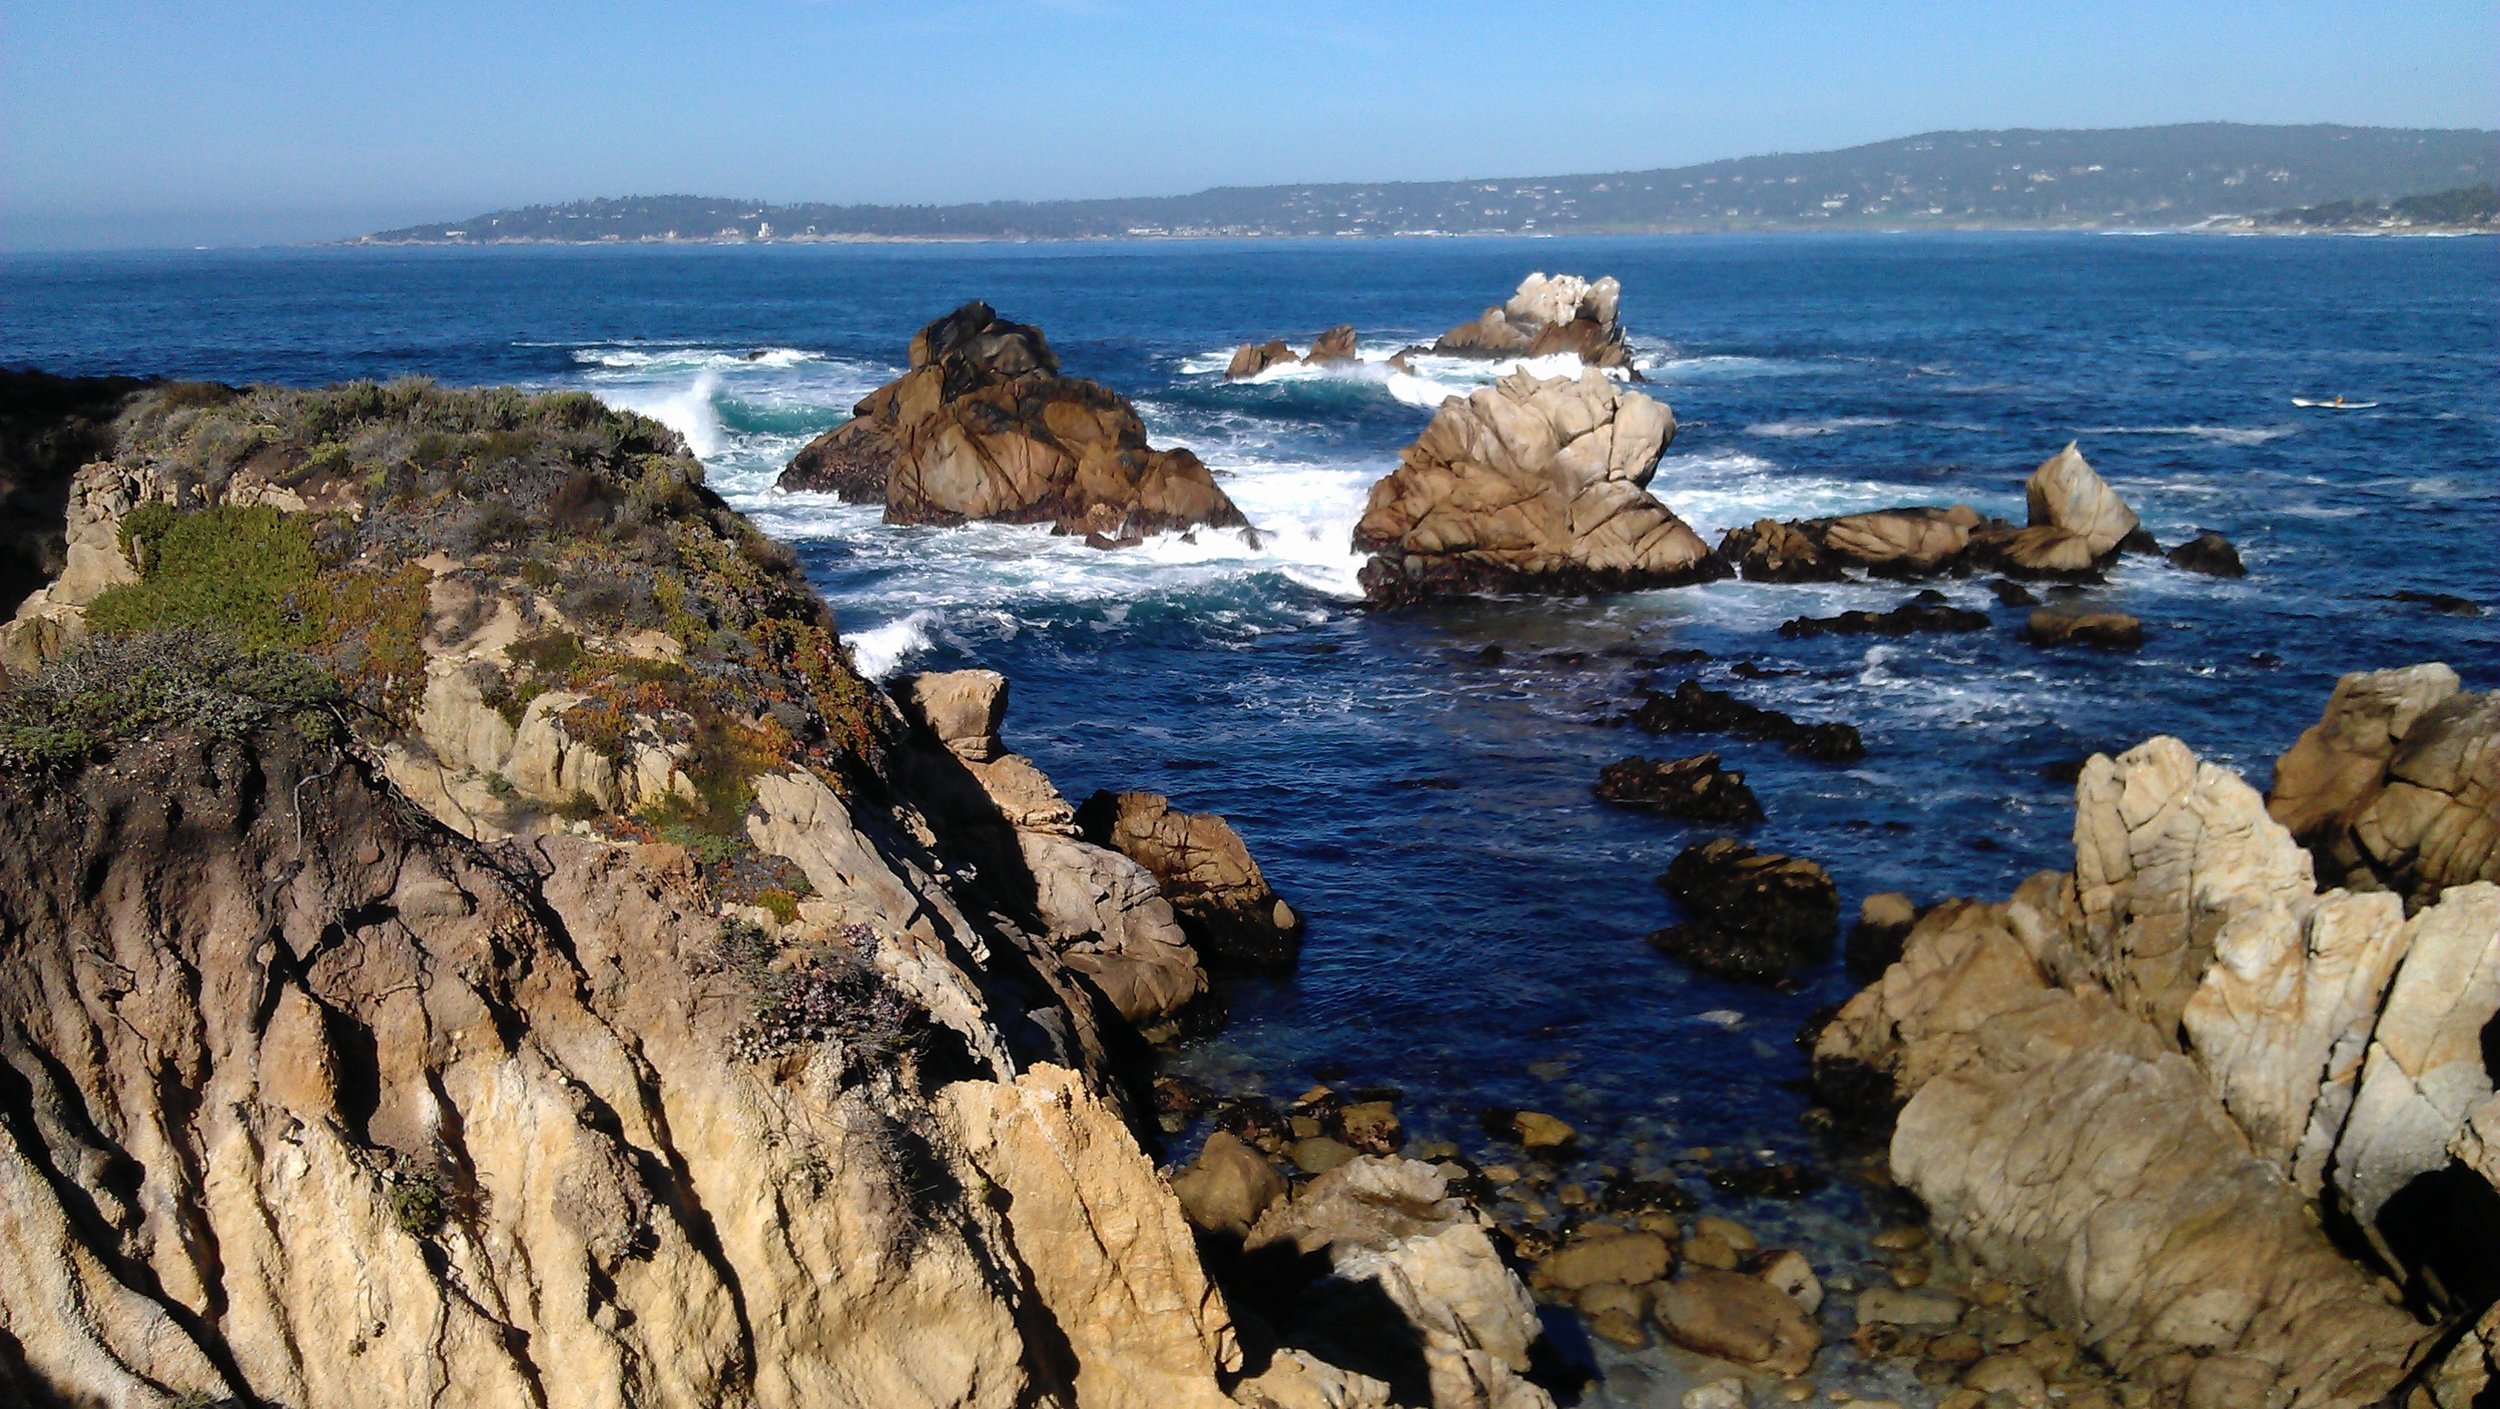 Swells and currents become hypnotizing at Point Lobos